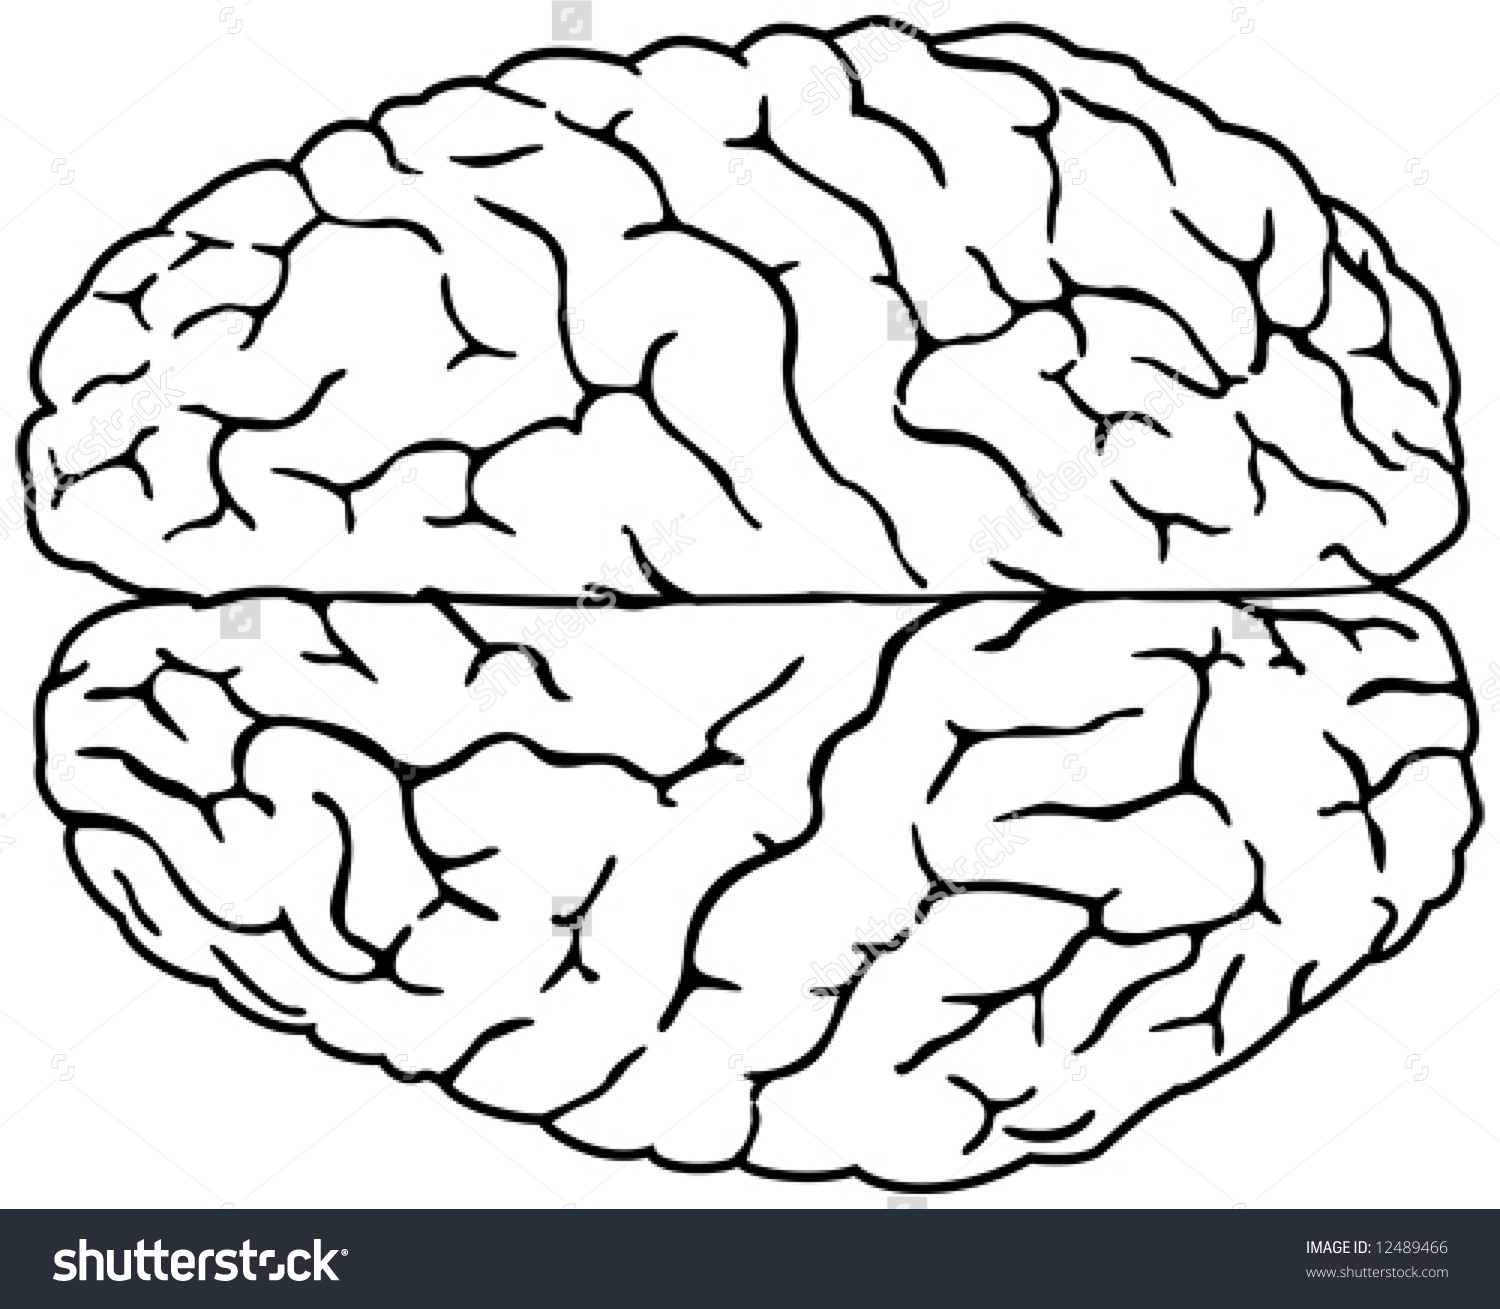 1500x1309 Simple Drawing Of A Brain